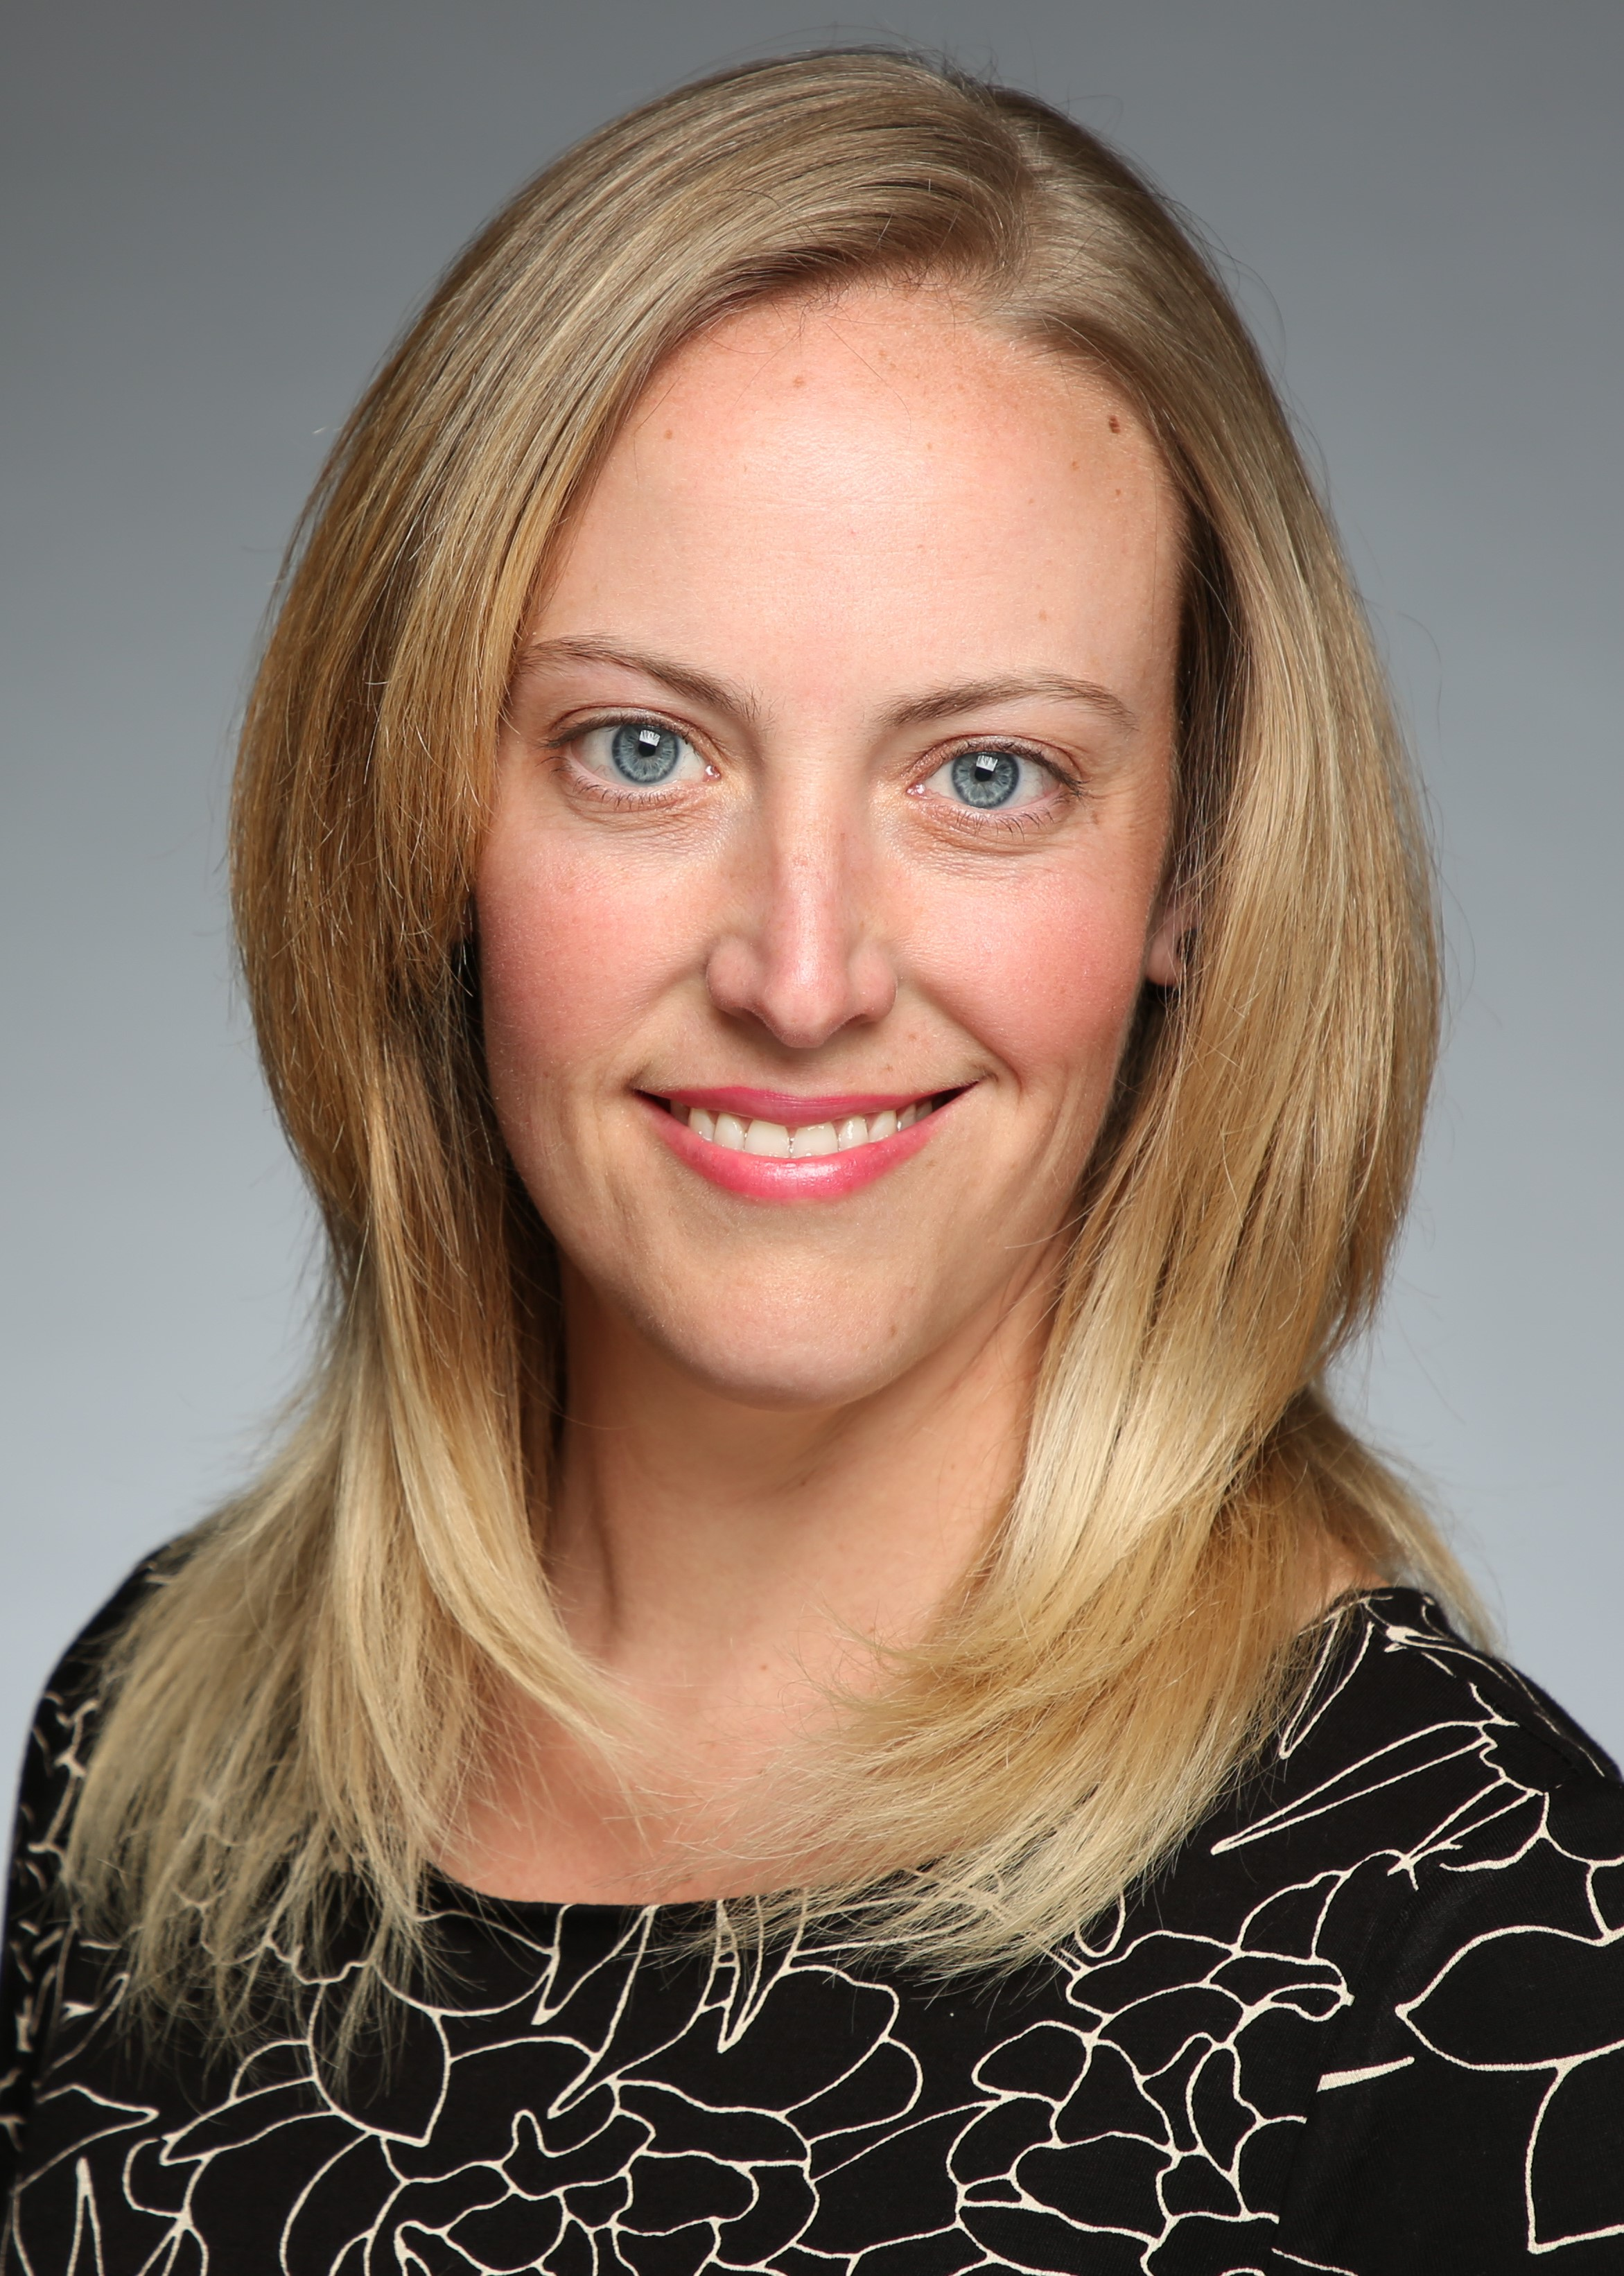 heidi dueweke bergen counseling center